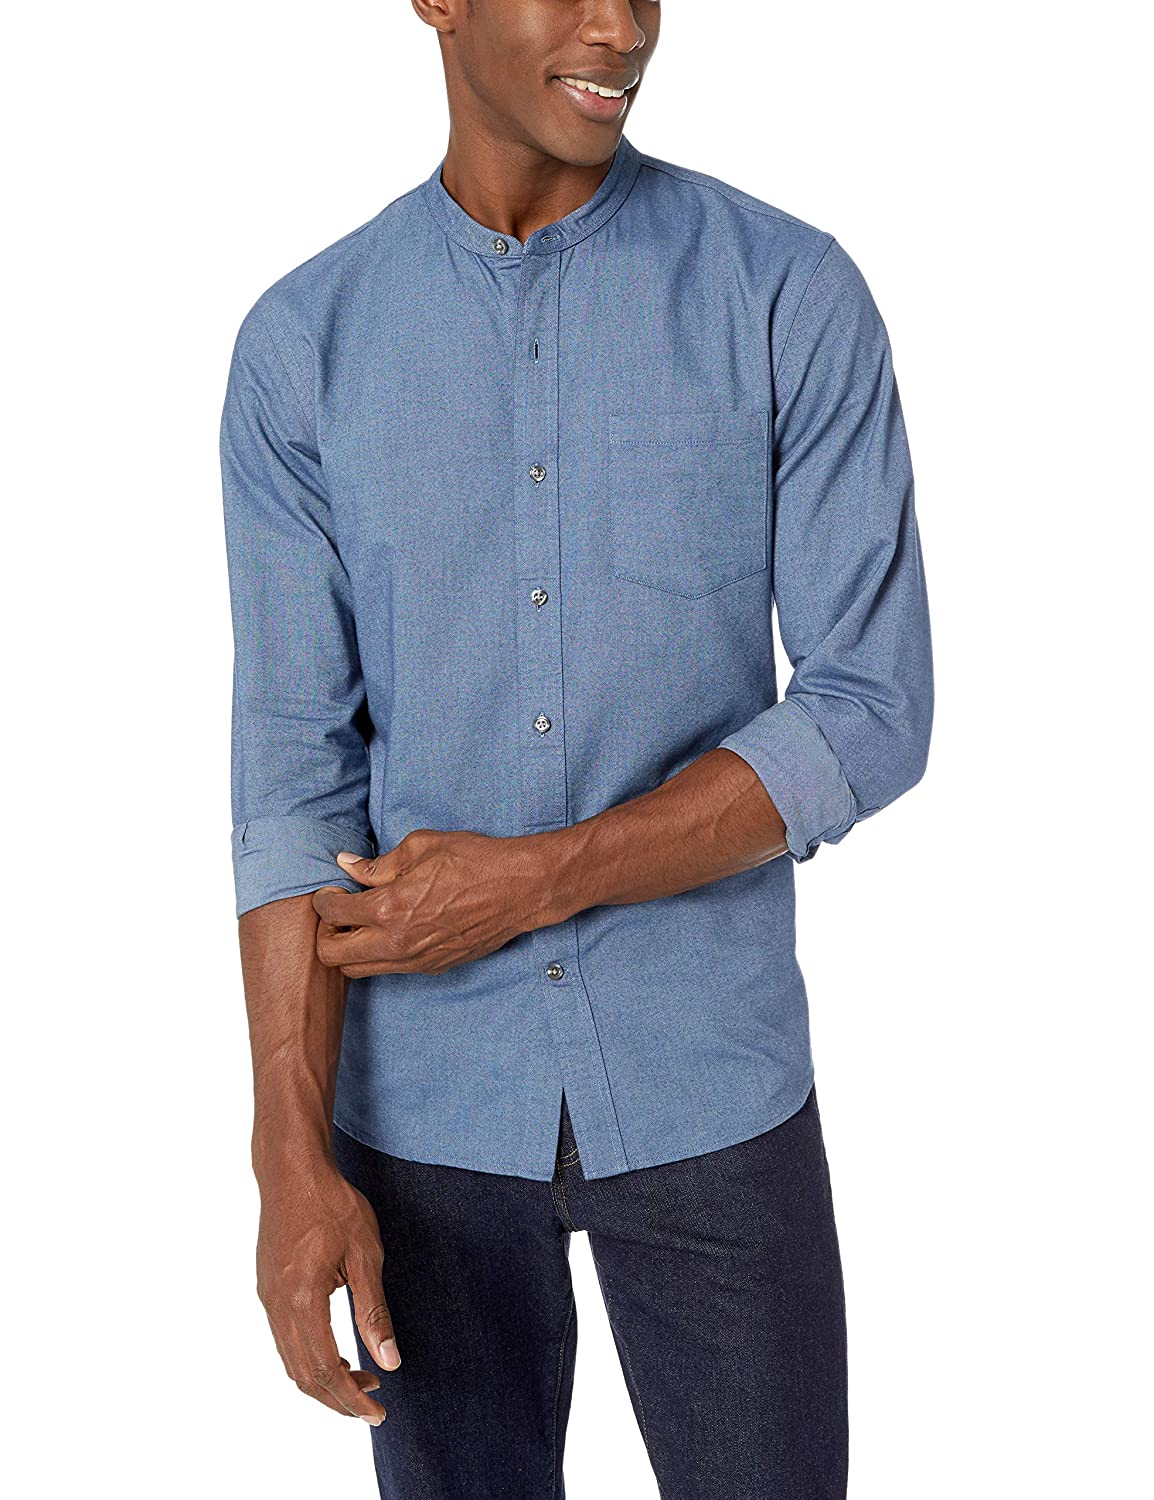 1920s Men's Dress Shirts, Casual Shirts Amazon Brand - Goodthreads Mens Standard-Fit Long-Sleeve Band-Collar Oxford Shirt $25.00 AT vintagedancer.com